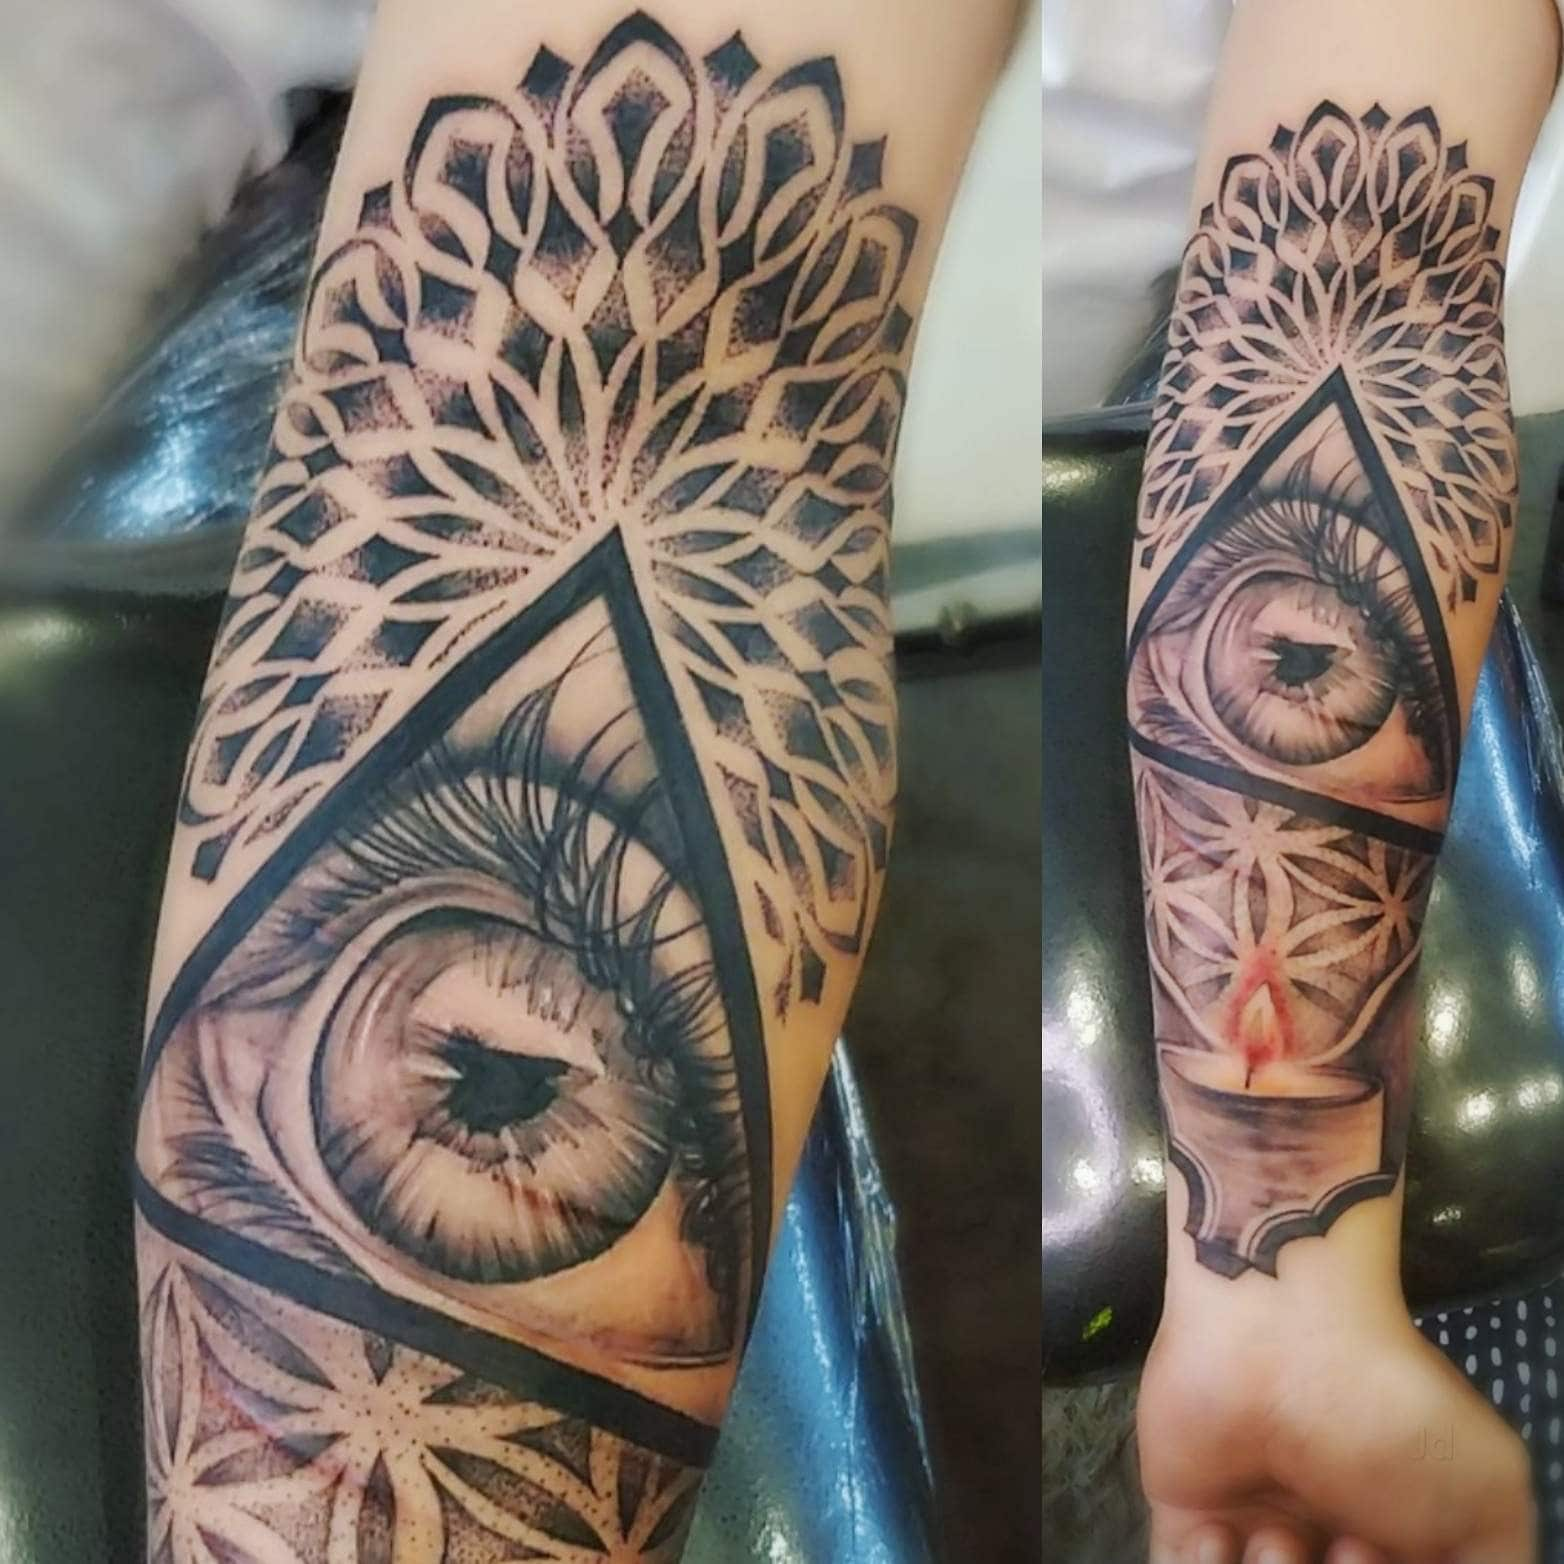 c075ef170 Top 100 Tattoo Artists in Bangalore - Best Tattoo Makers - Justdial